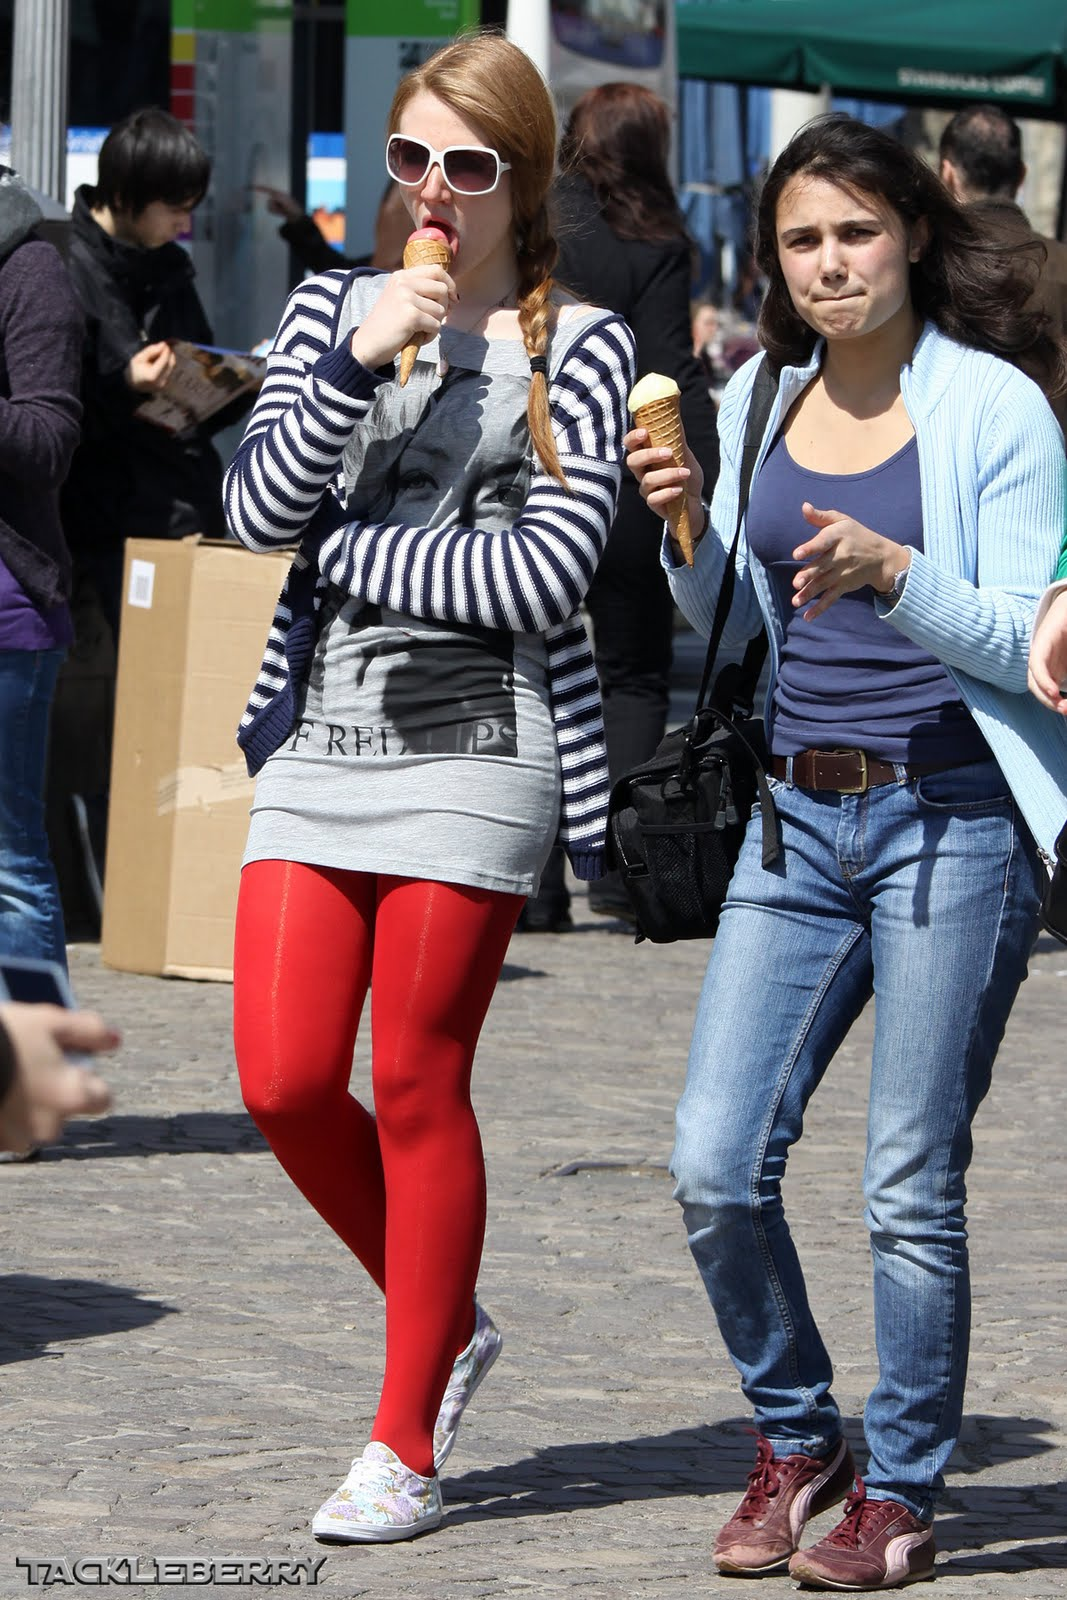 Leggings candid